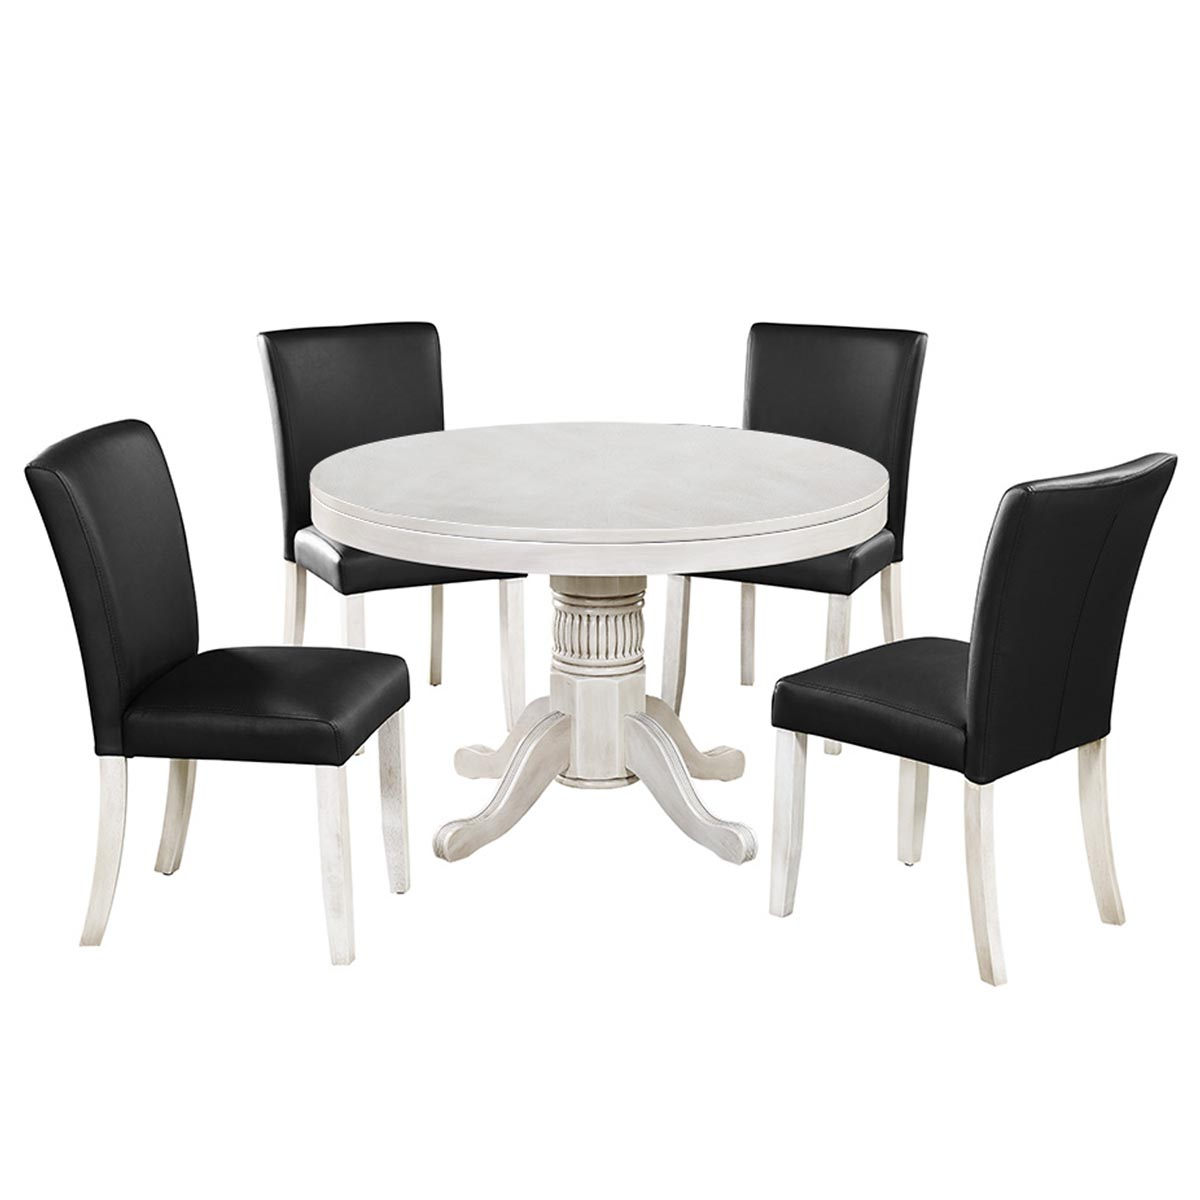 Antique White Finish with Optional Dining Chairs